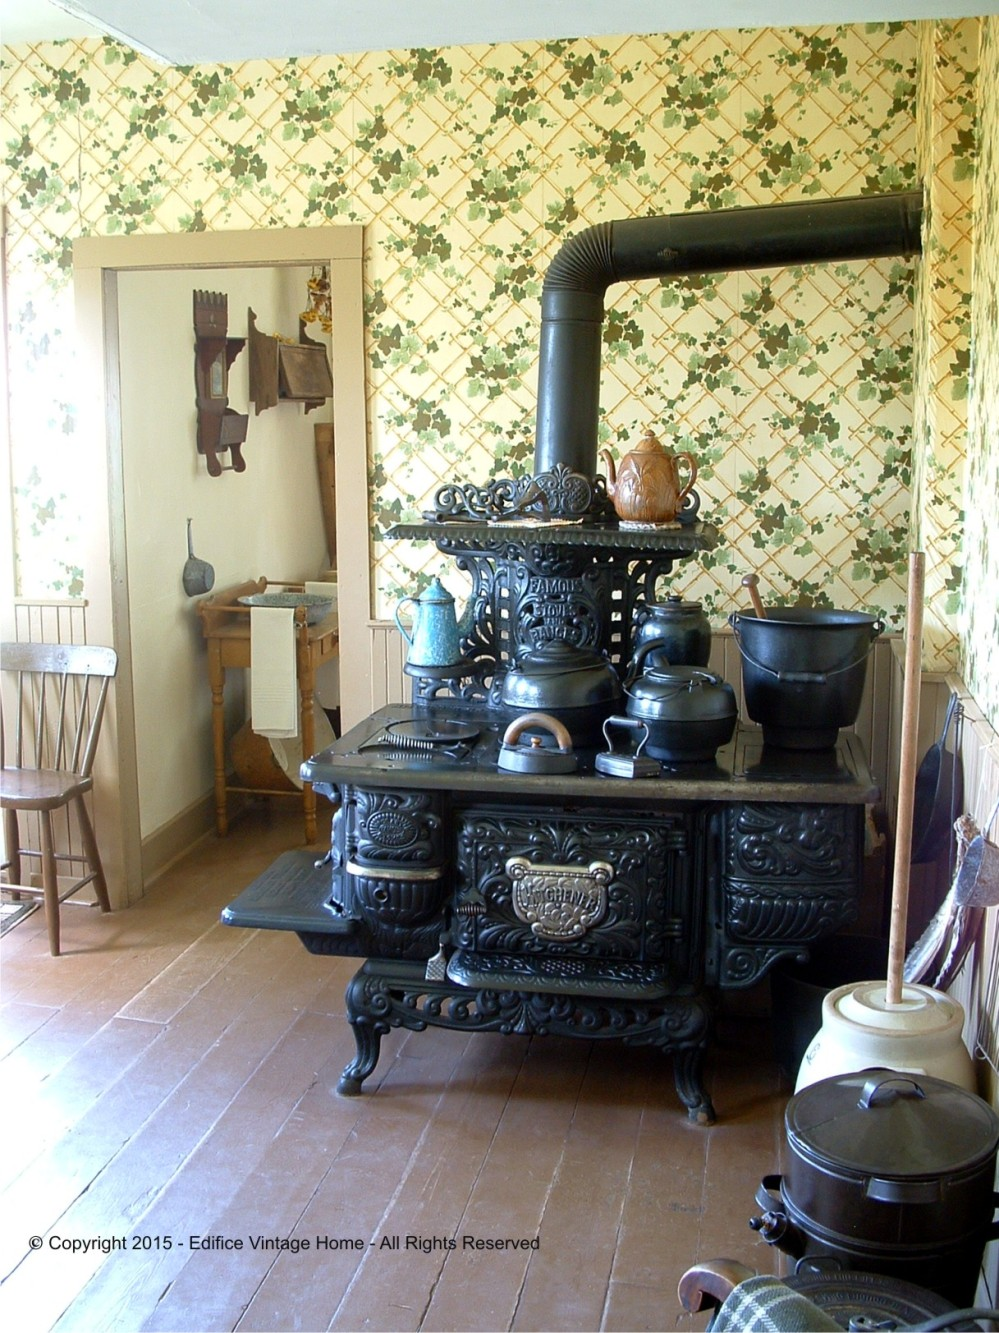 Antique Stoves Copyright 2015 Edifice 5